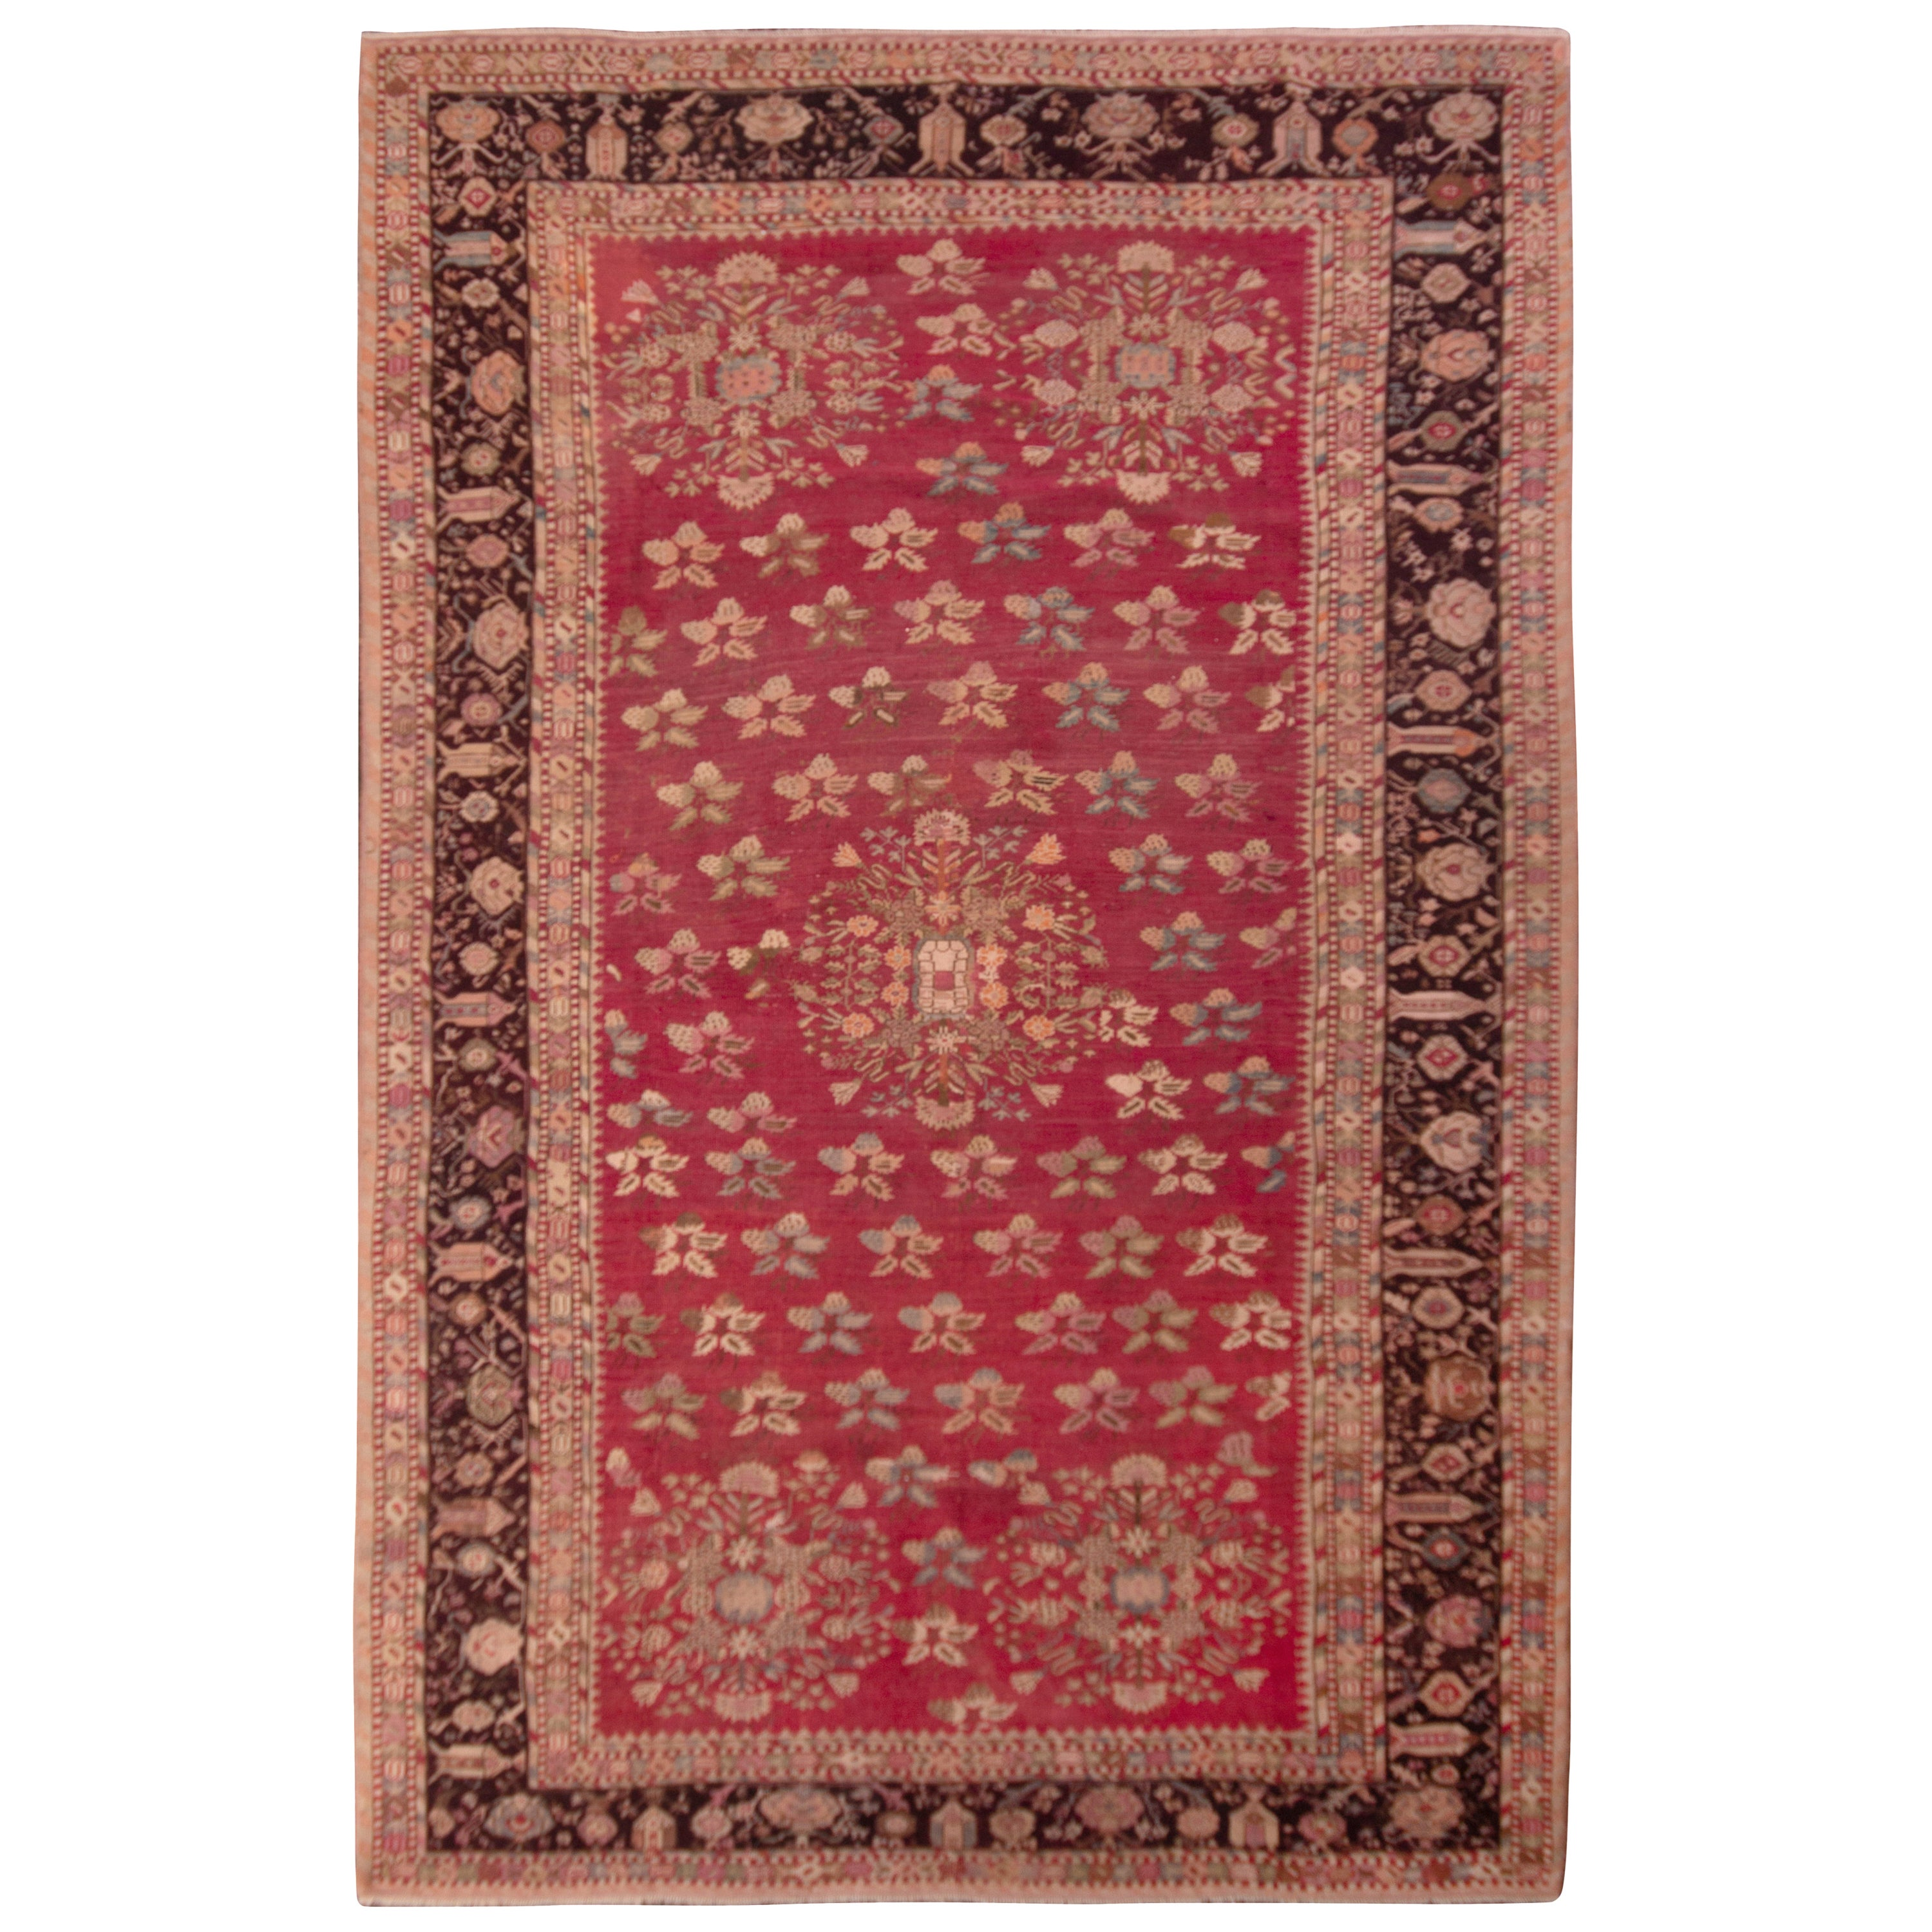 Hand Knotted Antique Gordes Rug Red and Beige Floral Pattern